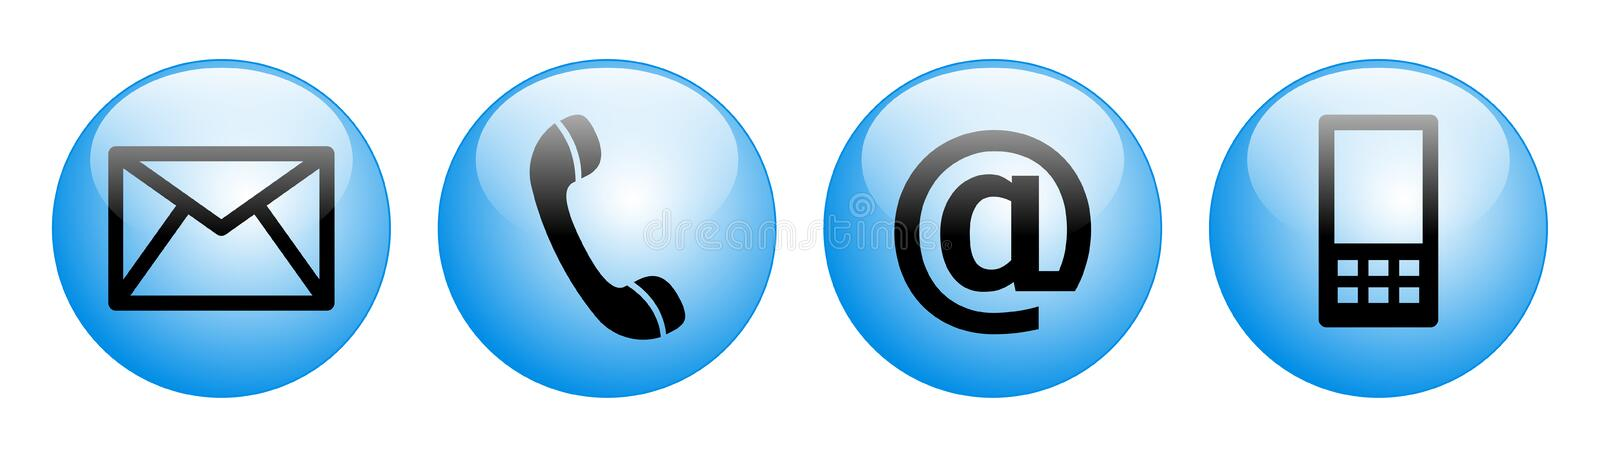 Contact us web buttons blue royalty free illustration